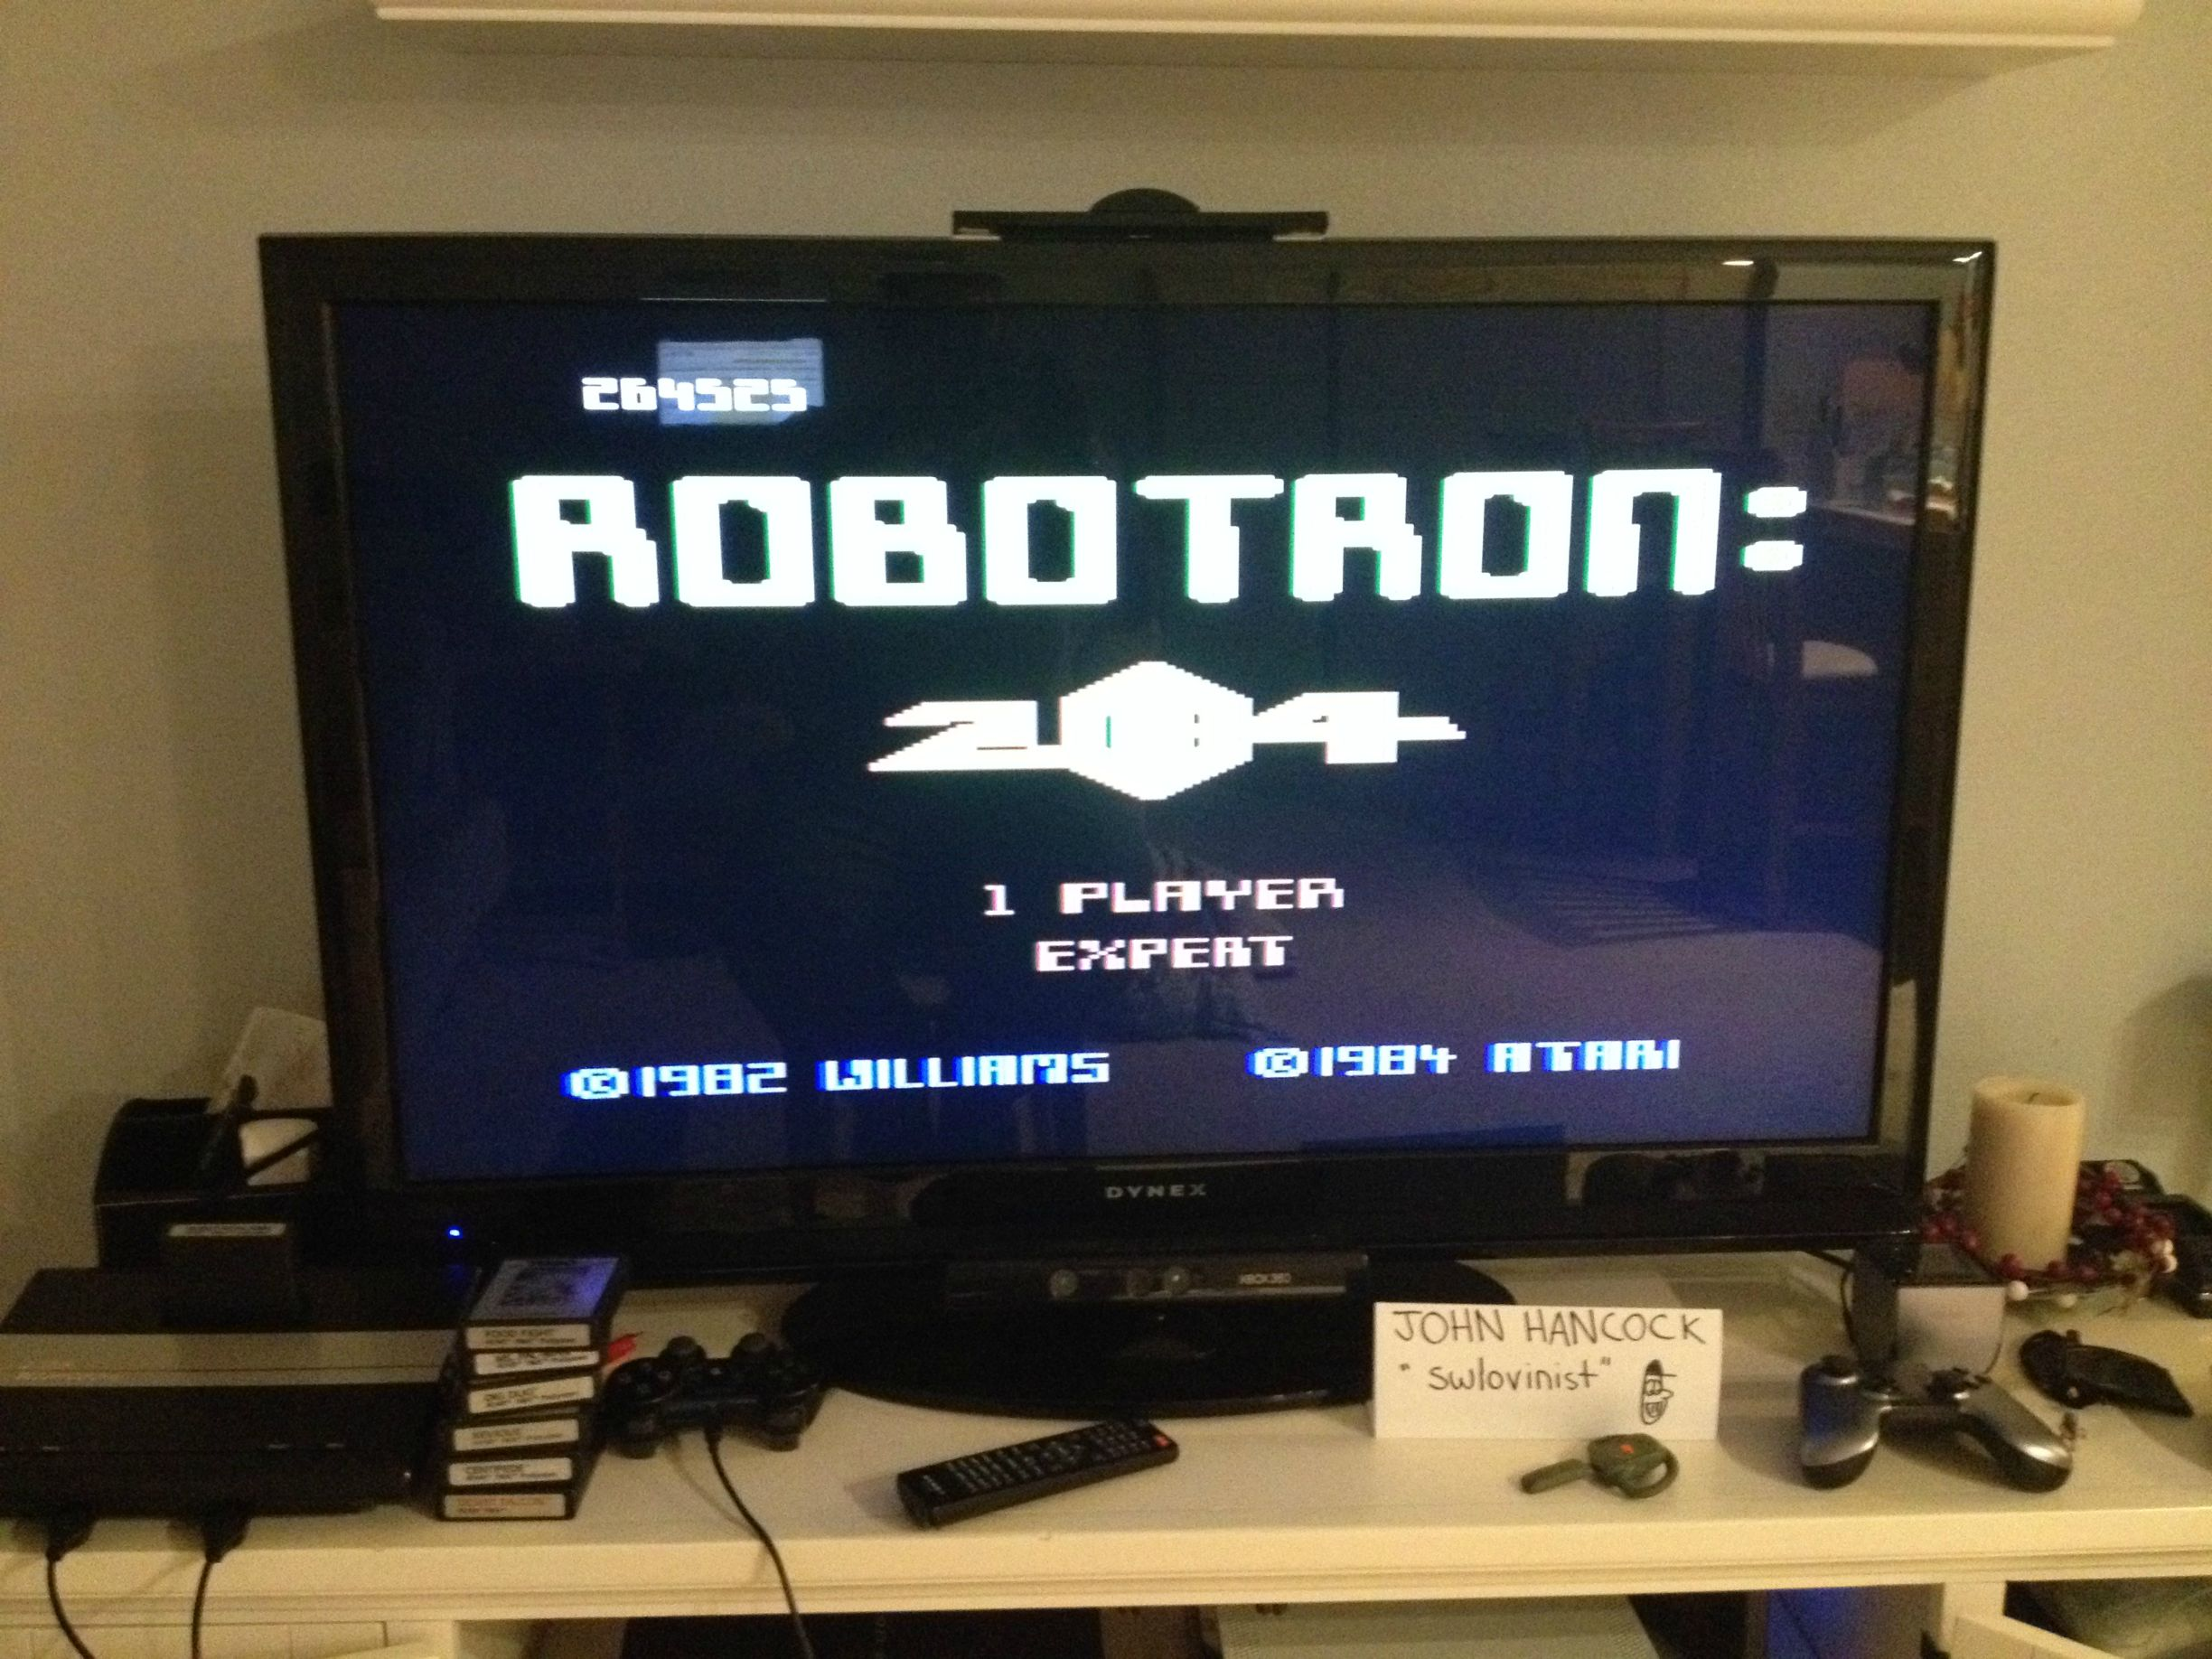 Robotron 2084: Expert 264,525 points